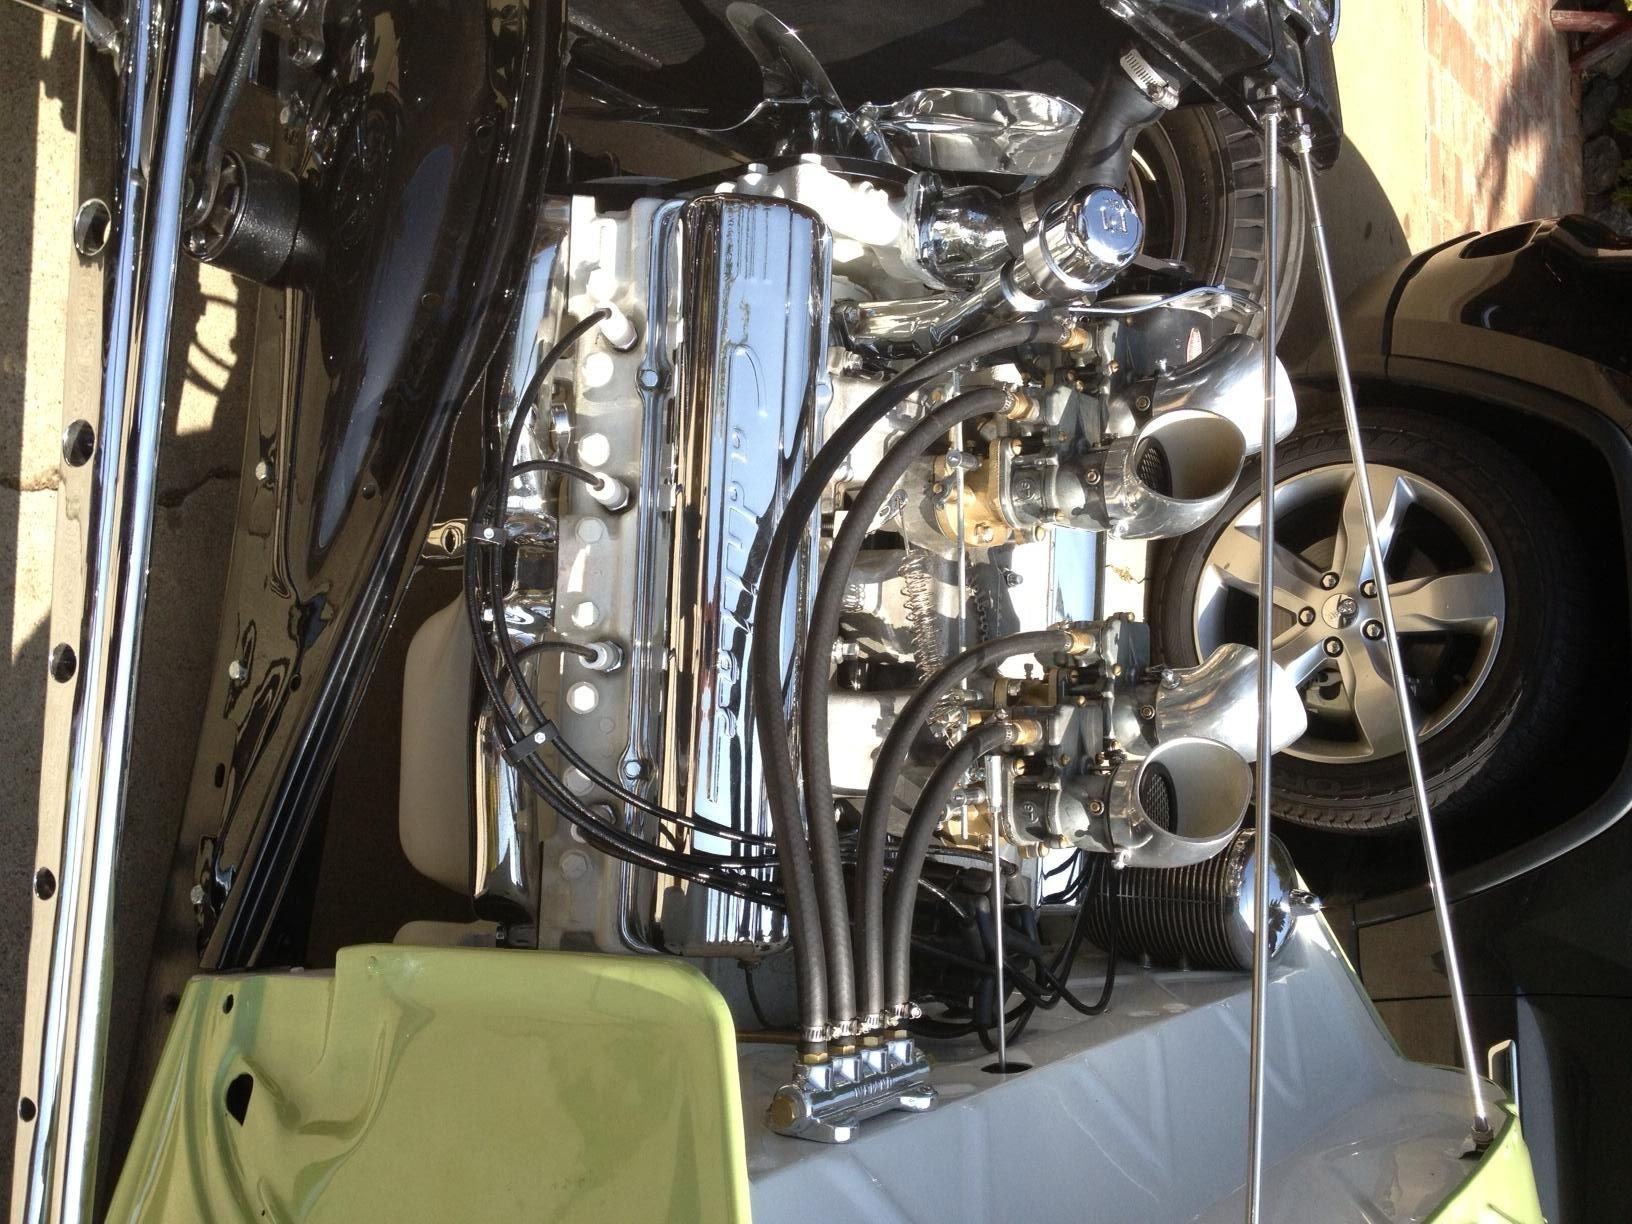 hight resolution of a good engine photo of joe clary s 1934 ford 3w coupe 331 cadillac with a four pack